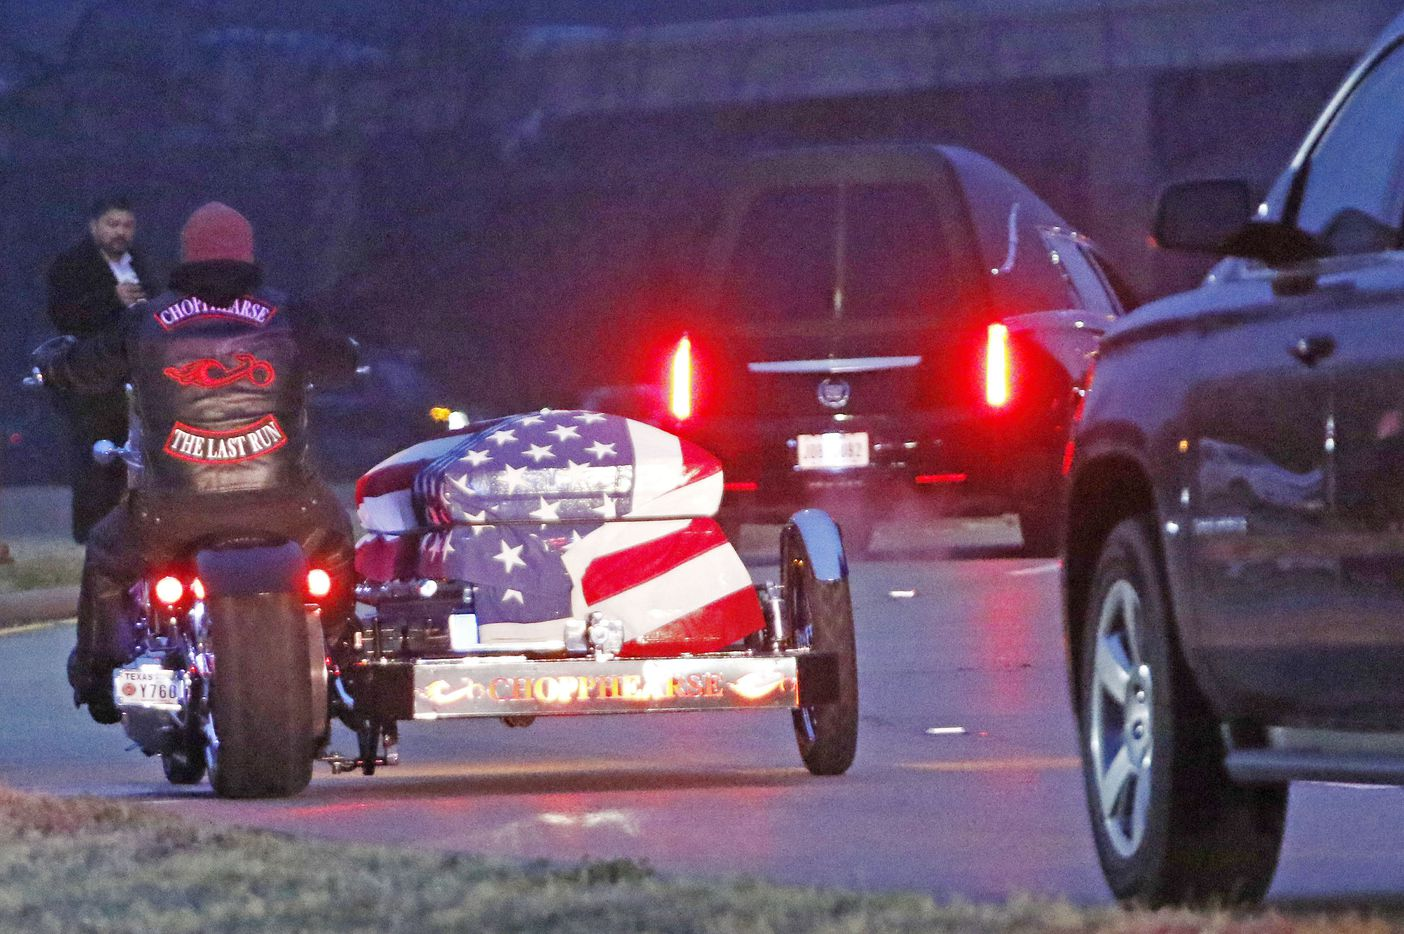 A motorcycle carrying Richardson police officer David Sherrard leads funeral procession at Watermark Community Church in Dallas, Texas, Tuesday, February 13, 2018.